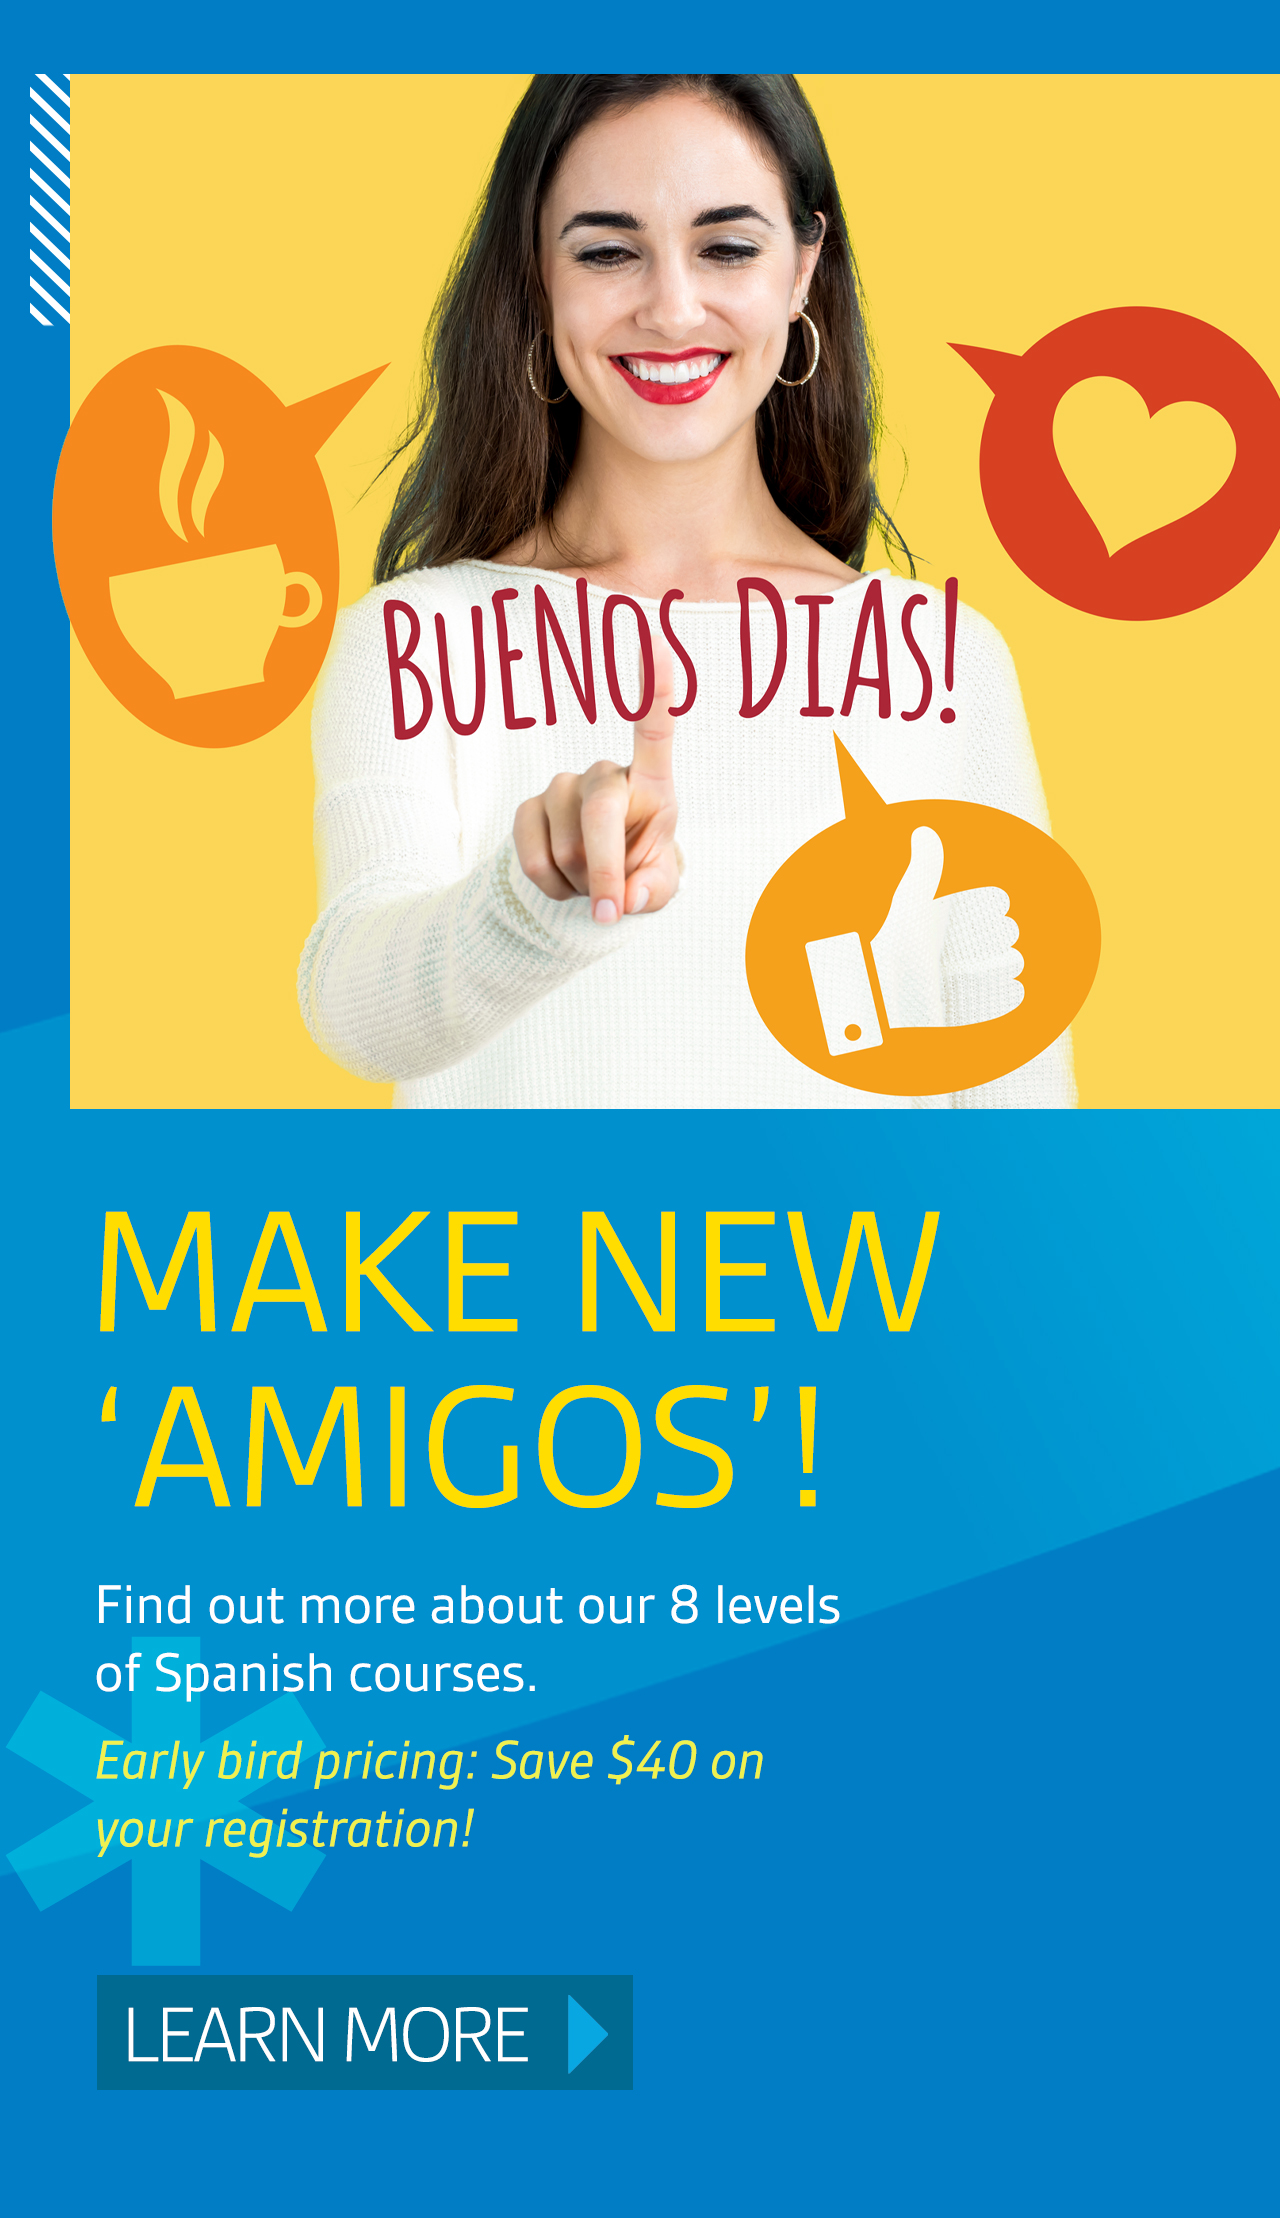 Make new 'amigos'! Find out more about 8 levels of Spanish courses. Early bird pricing: Sve $40 on your registration! Learn more.